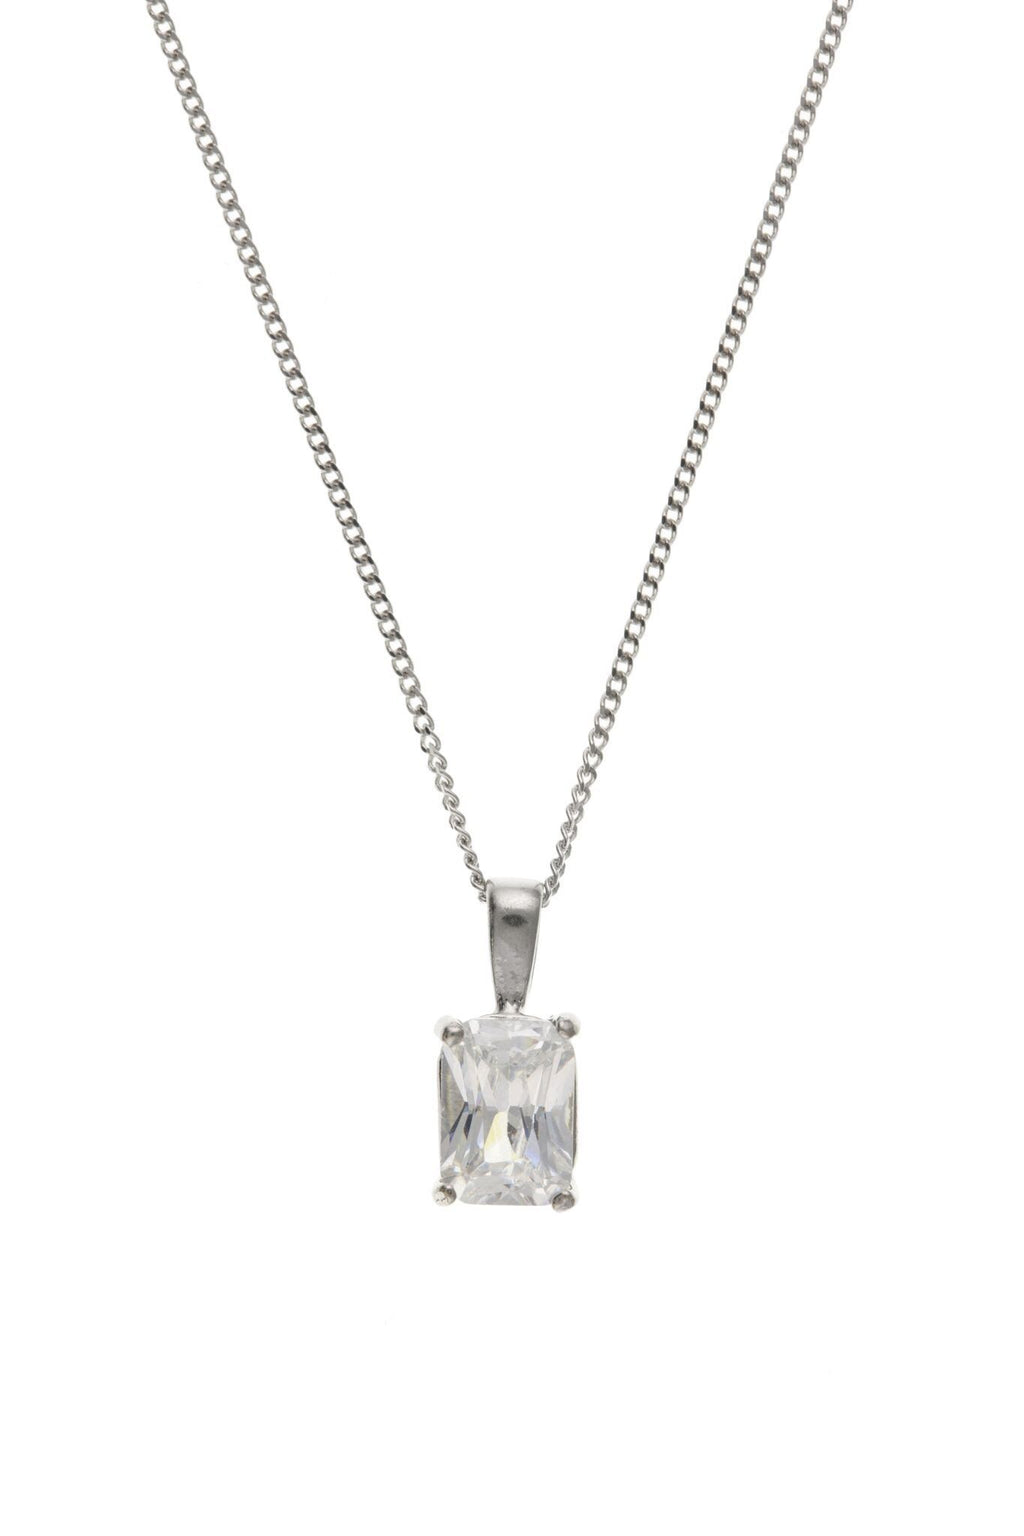 9ct White Gold Oblong CZ Pendant